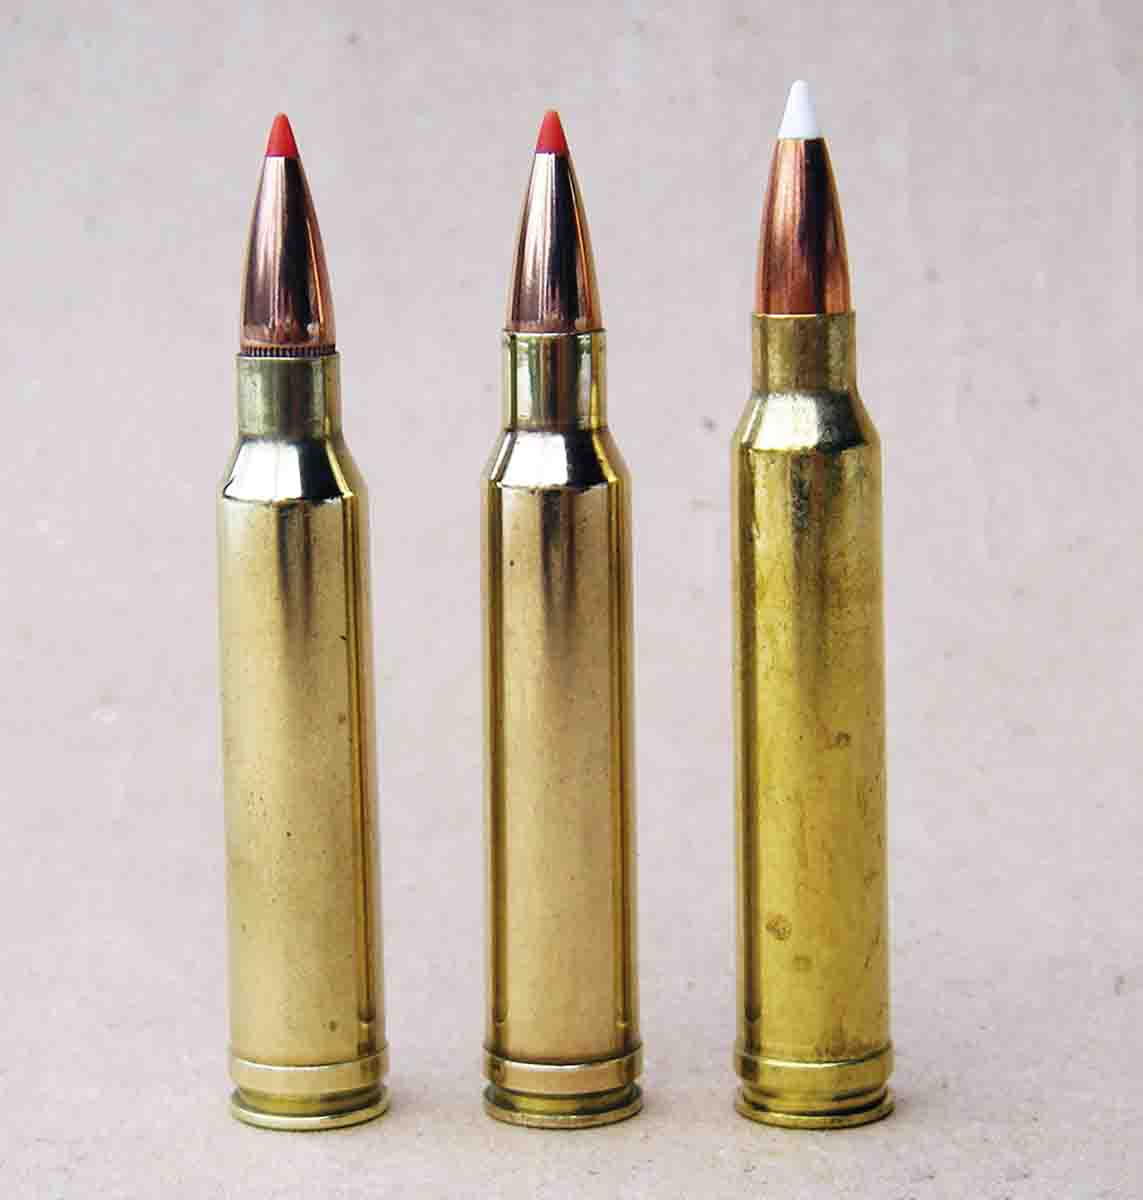 Many people expected Winchester to neck down the .338 Winchester Magnum case to create its .30-caliber magnum. However, Winchester chose to move the shoulder forward and increase powder capacity. Shown from left is the .30-338 wildcat, .308 Norma Magnum and .300 Winchester Magnum.